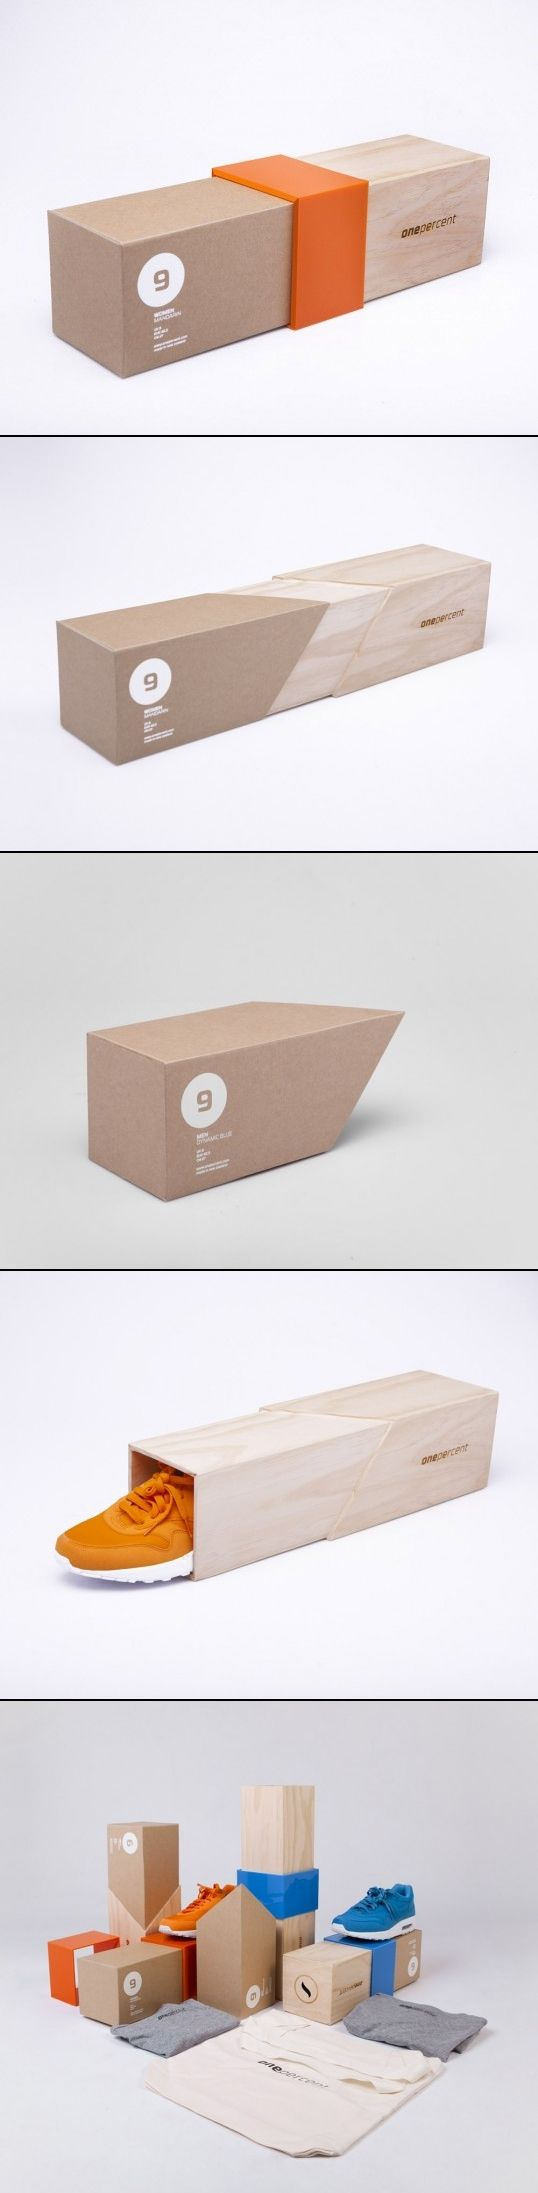 One Percent creative packaging by Ryan Romanes designer. PD